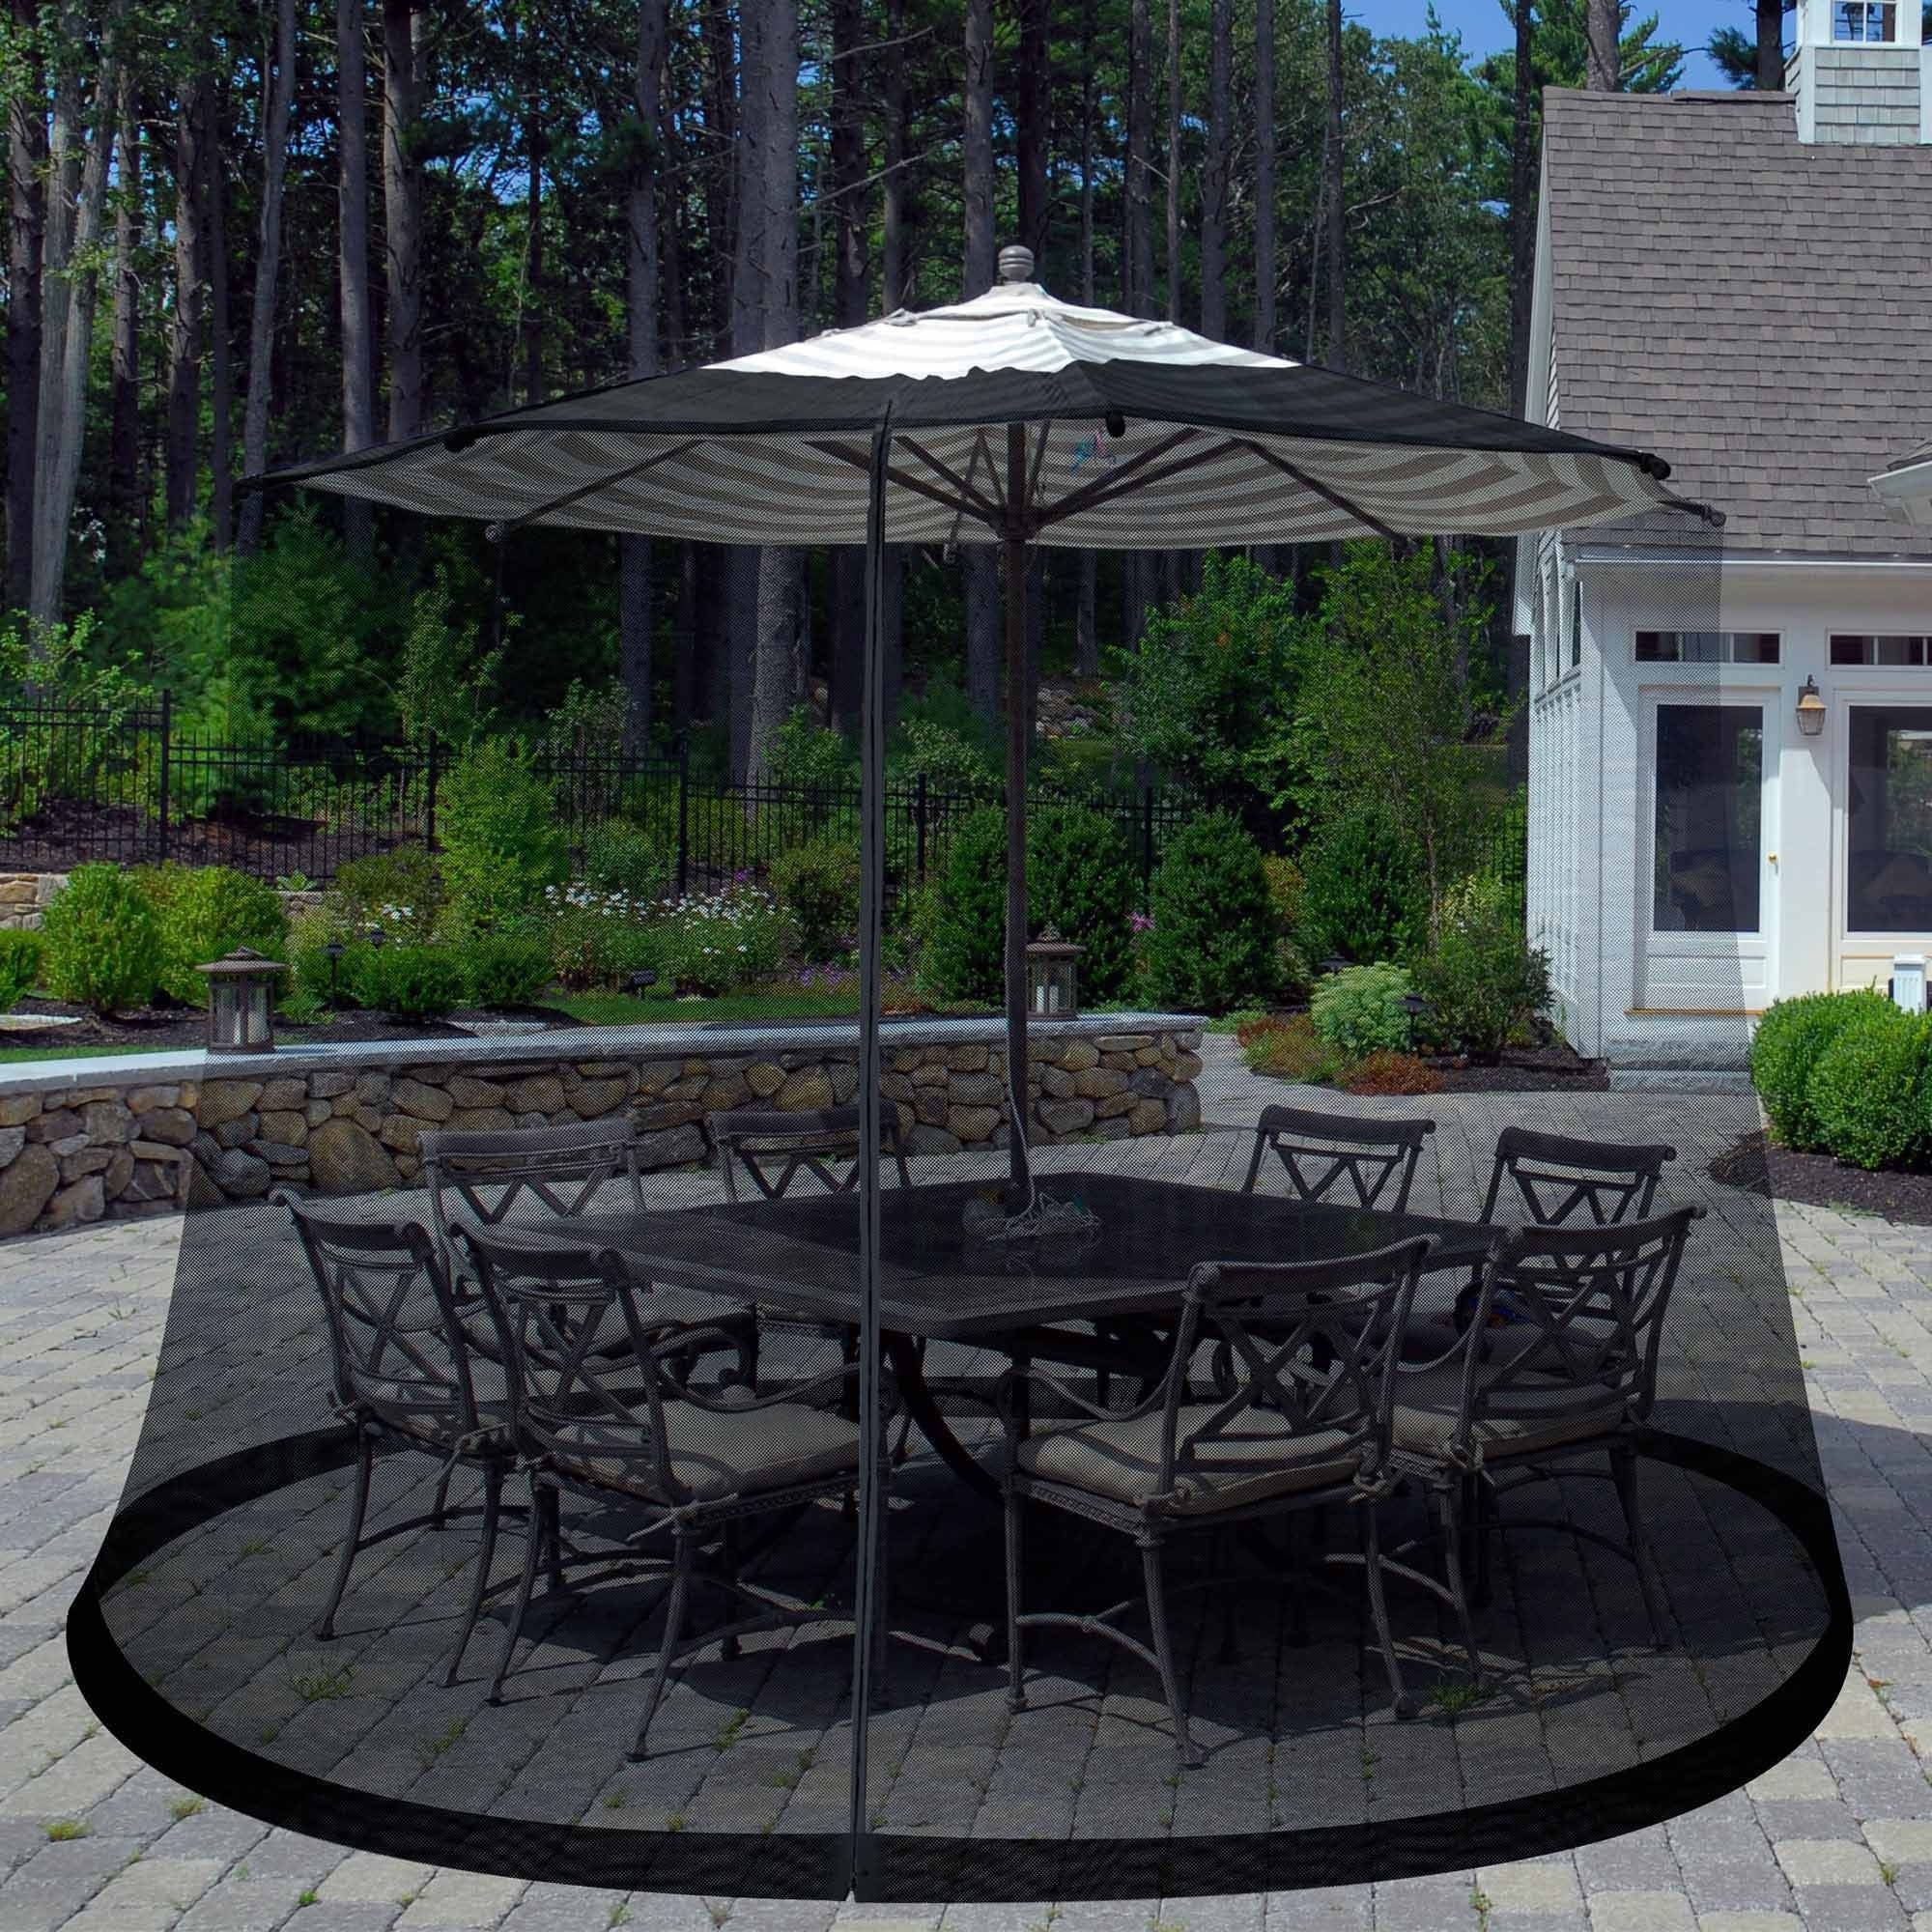 Widely Used Furniture: Costco Cantilever Umbrella For Most Dramatic Shade Throughout Costco Patio Umbrellas (View 19 of 20)